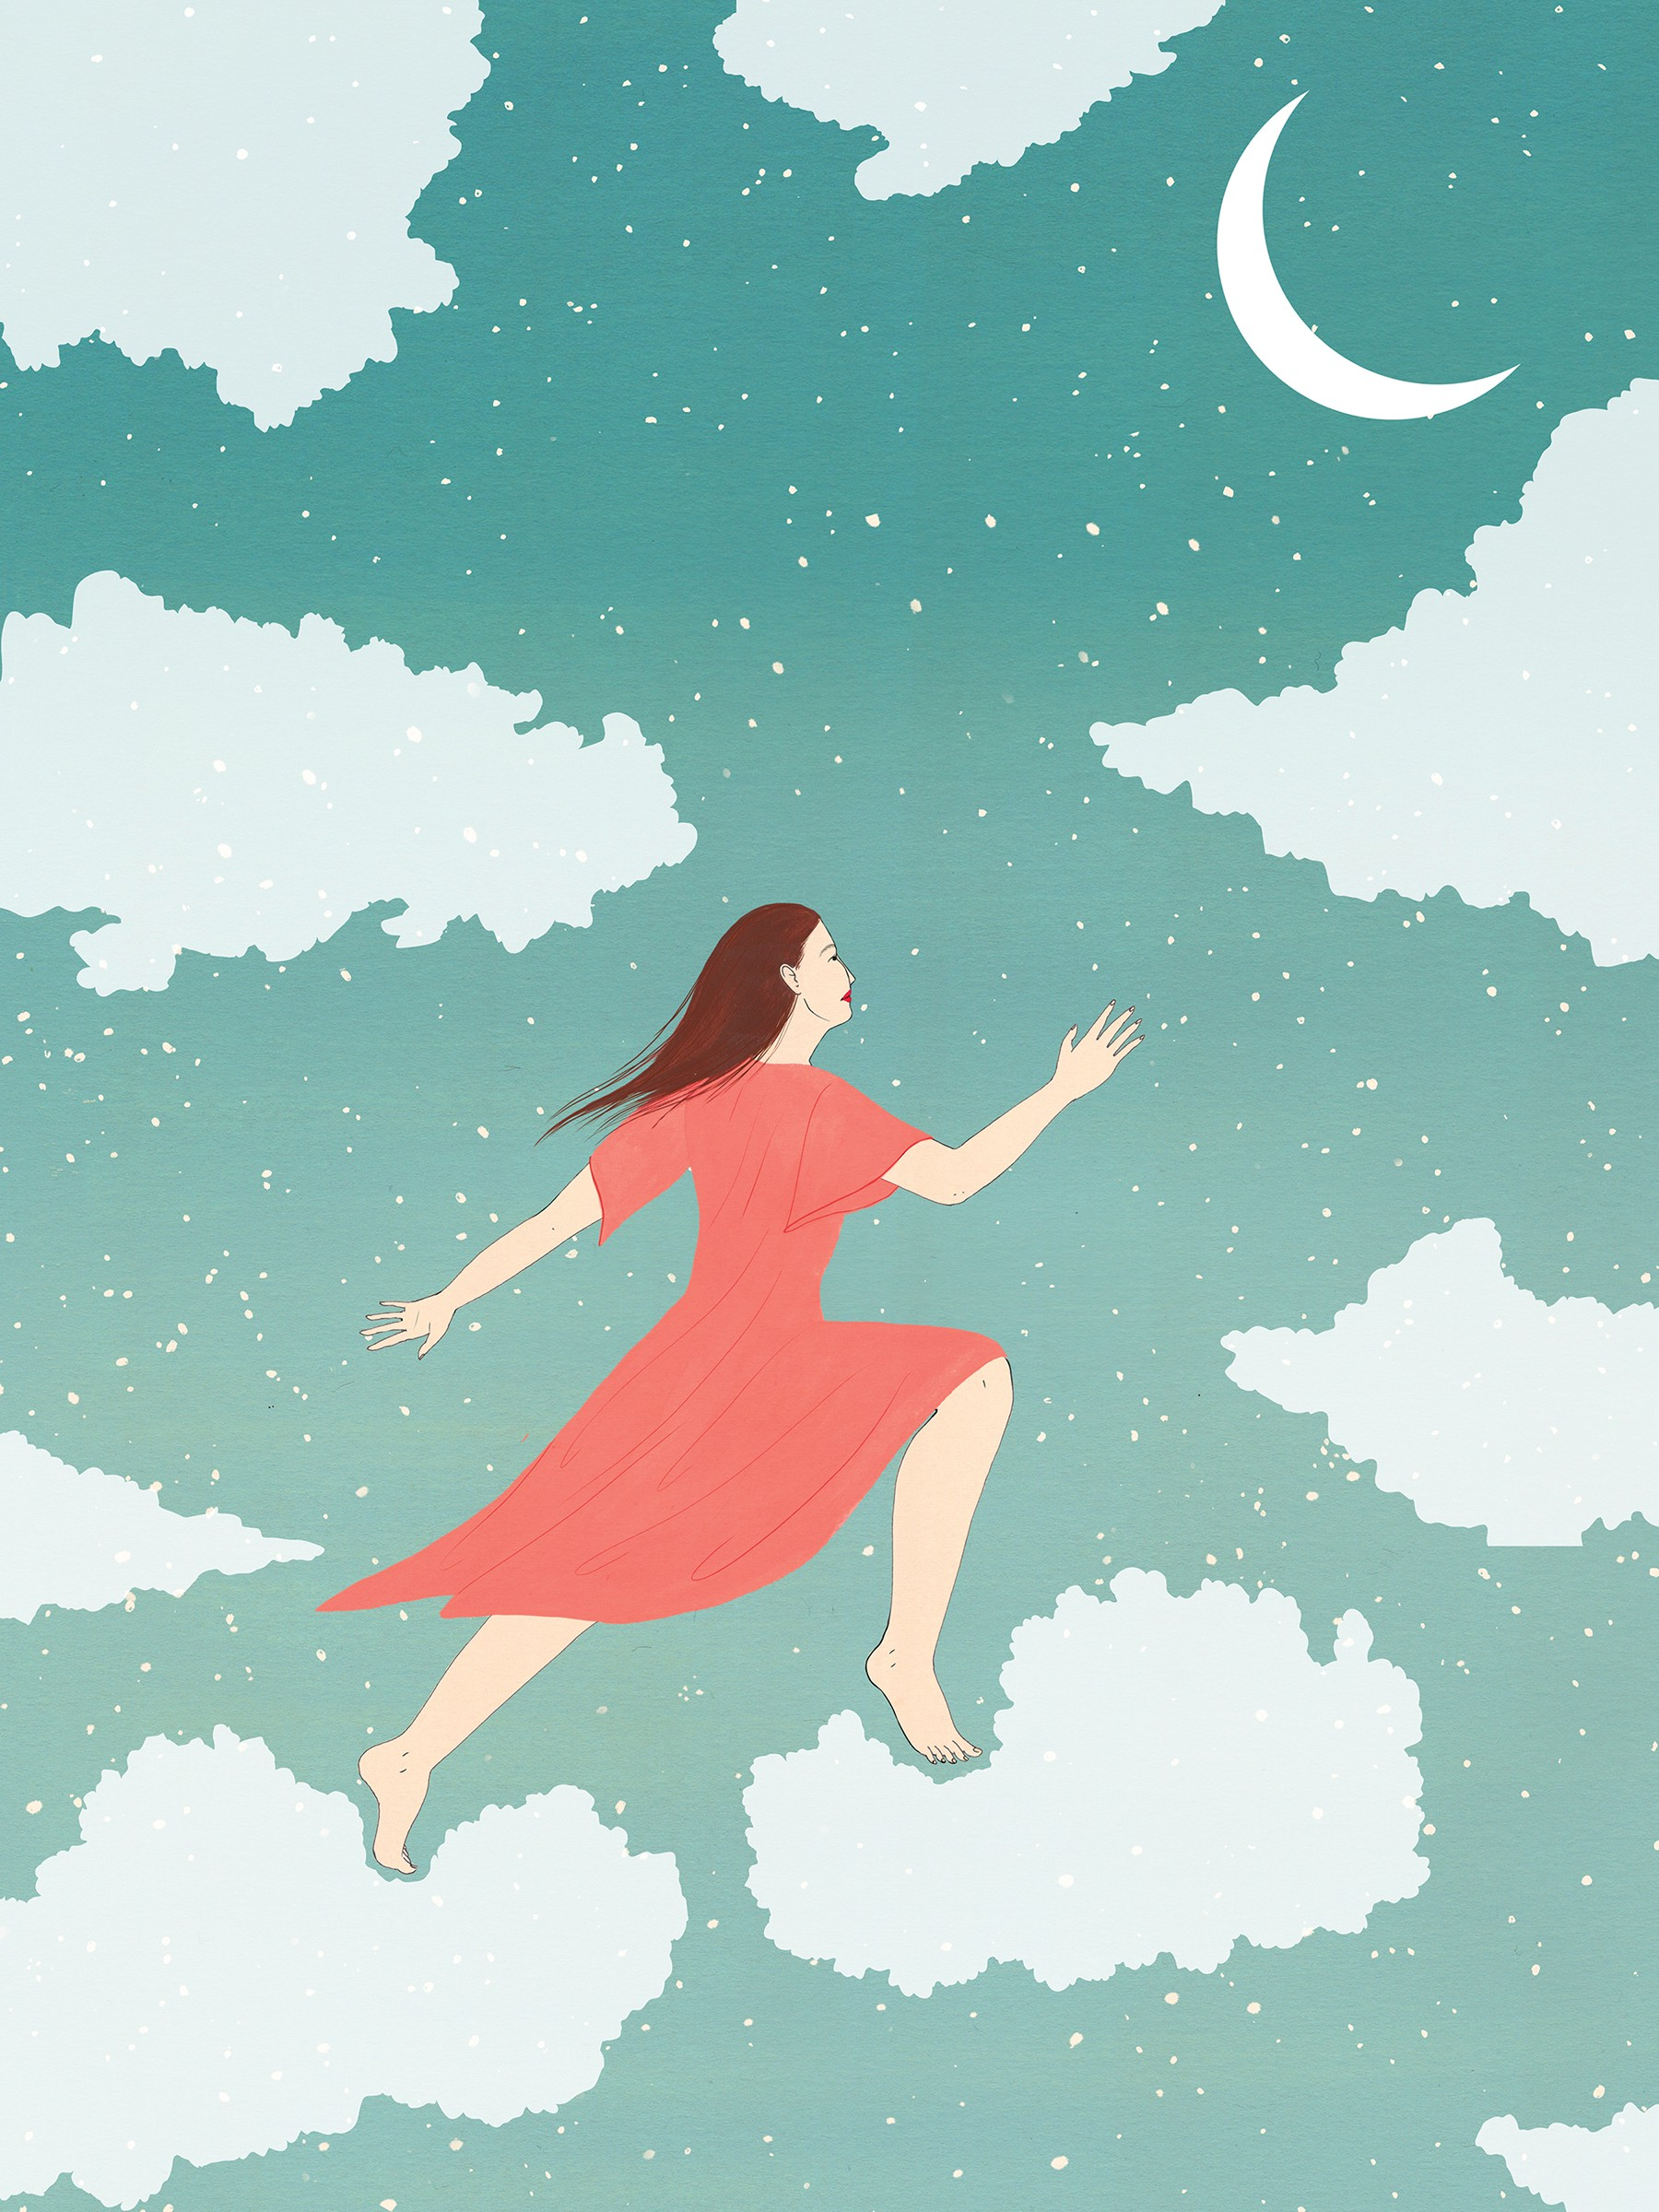 Illustration depicts a woman ascending the clouds, reaching towards the moon, and metaphorically, sleep.